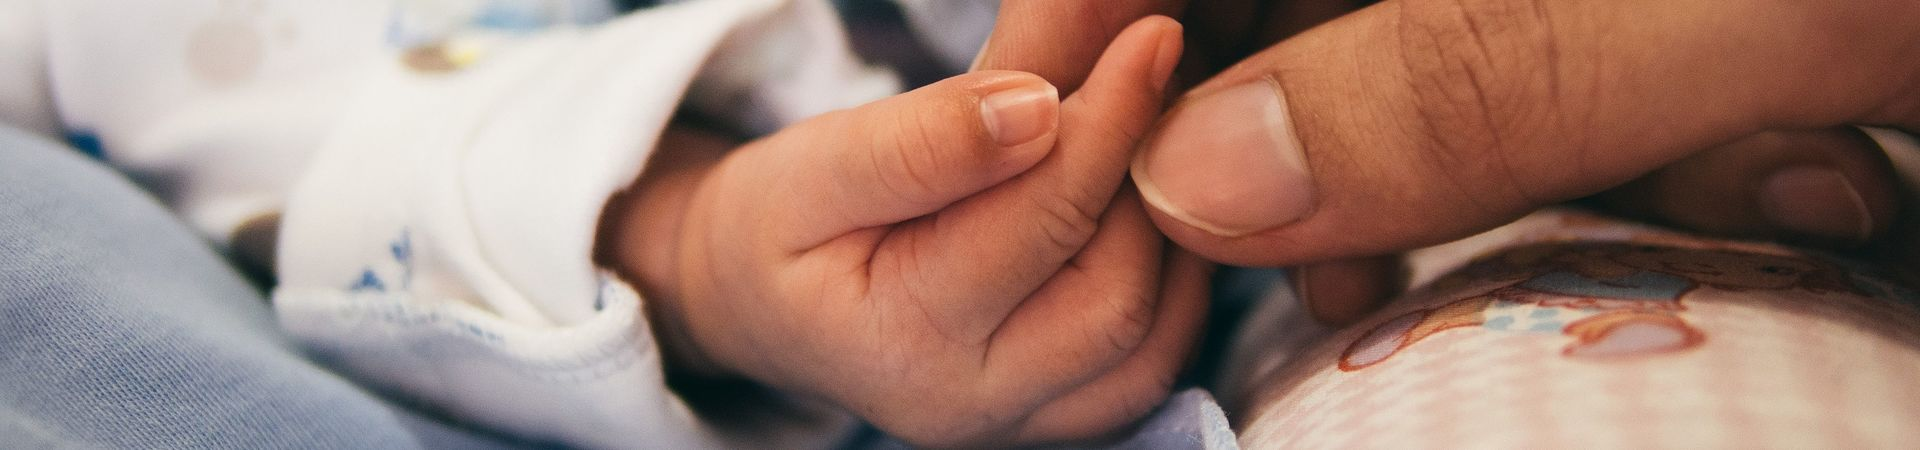 Hand of a newborn held by adult hand